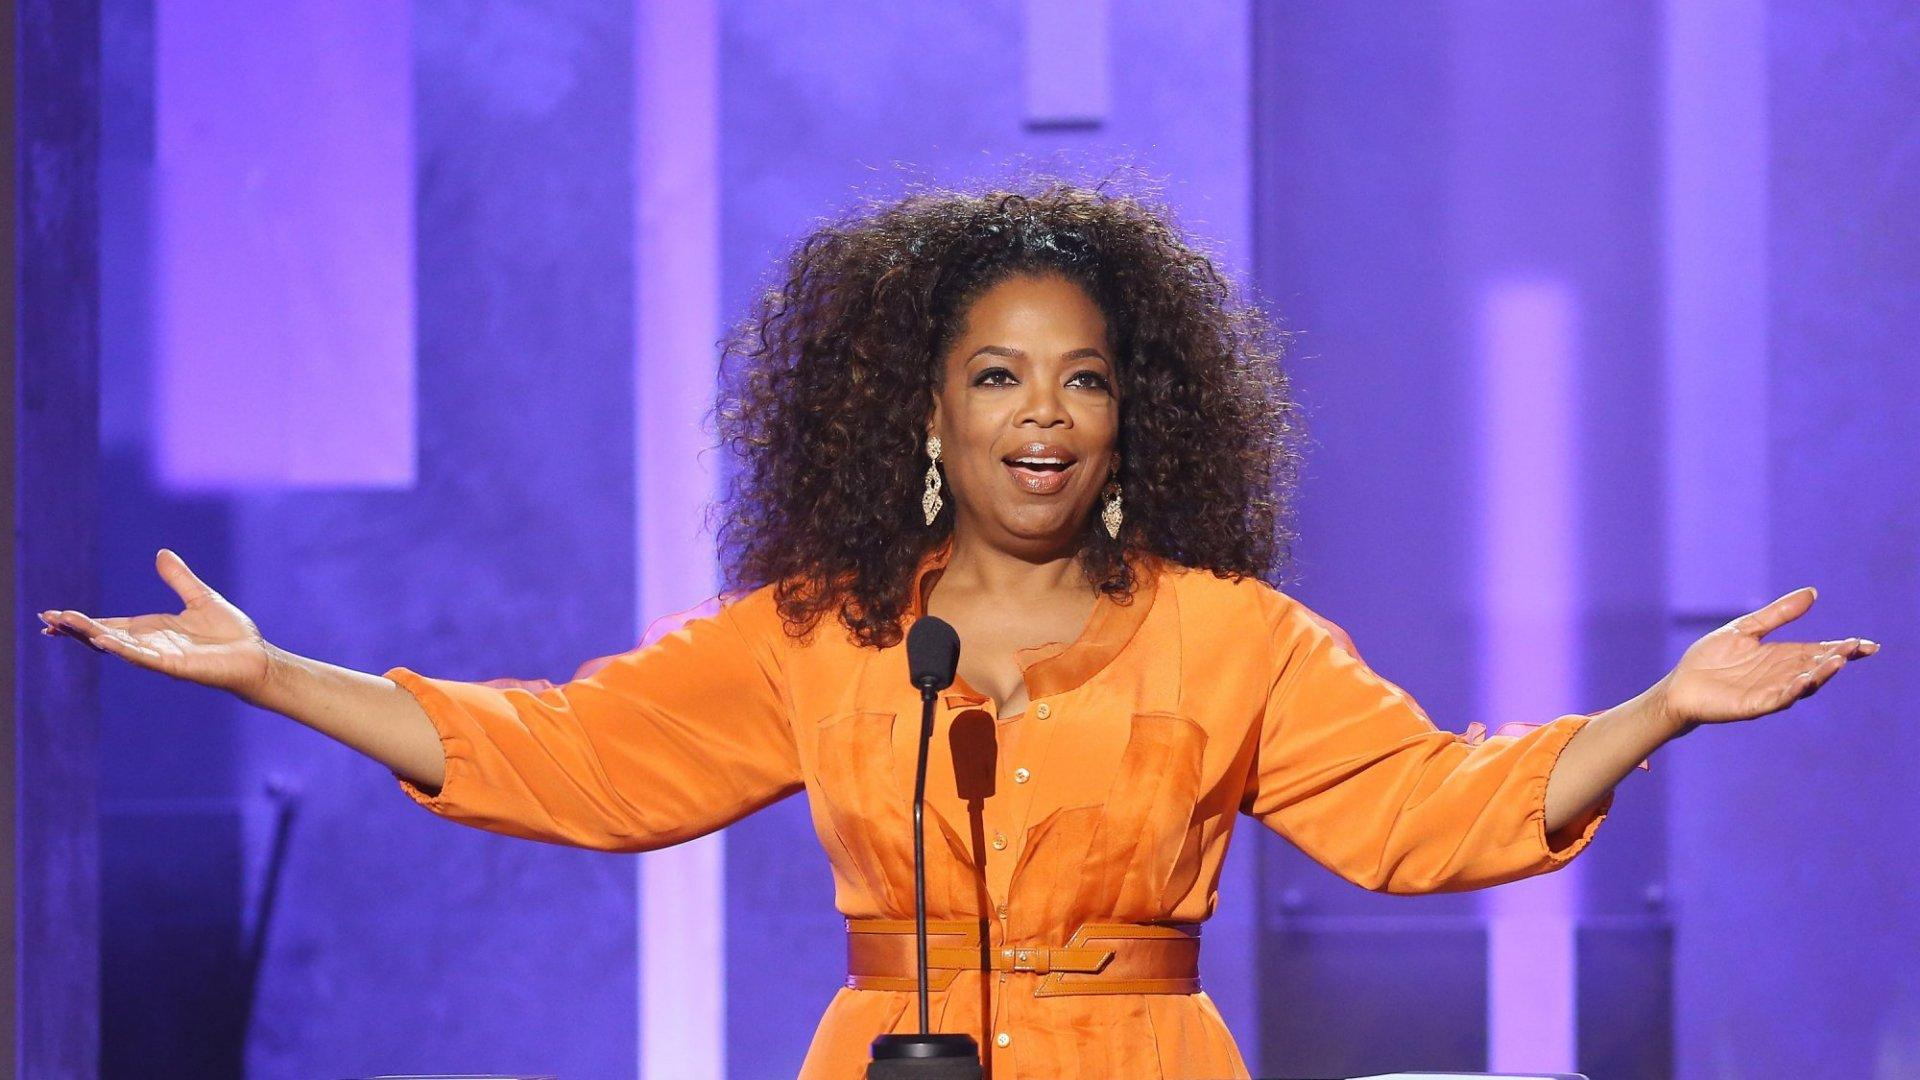 Oprah Winfrey Made $71 Million in a Single Day This Week. How Was Your  Monday? | Inc.com